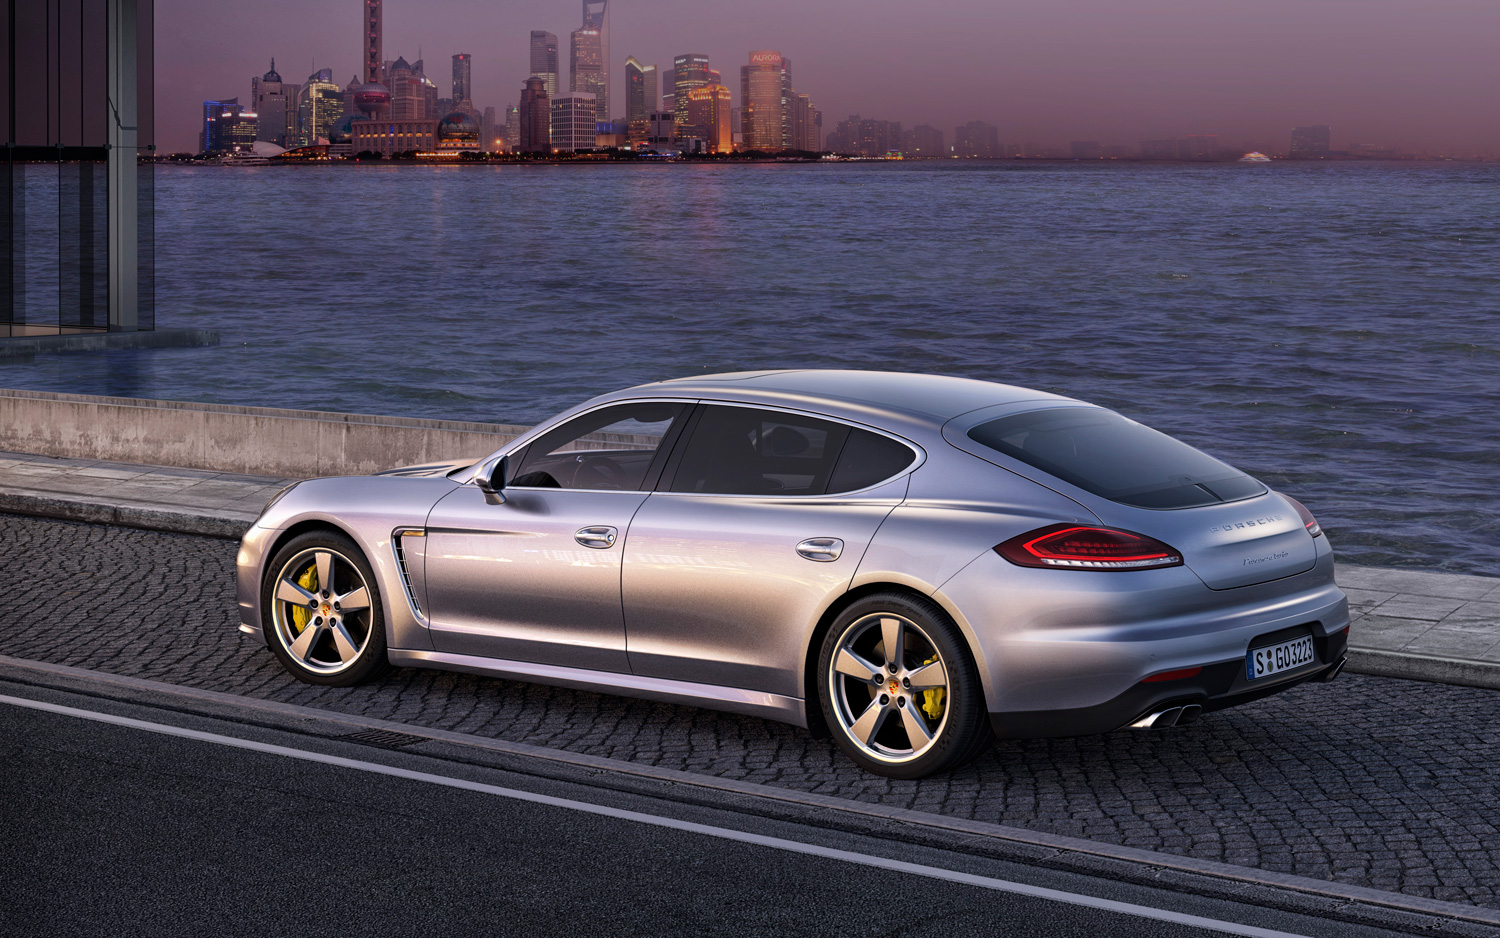 Report: Next Porsche Panamera Is More Stylish, May Gain Coupe Version